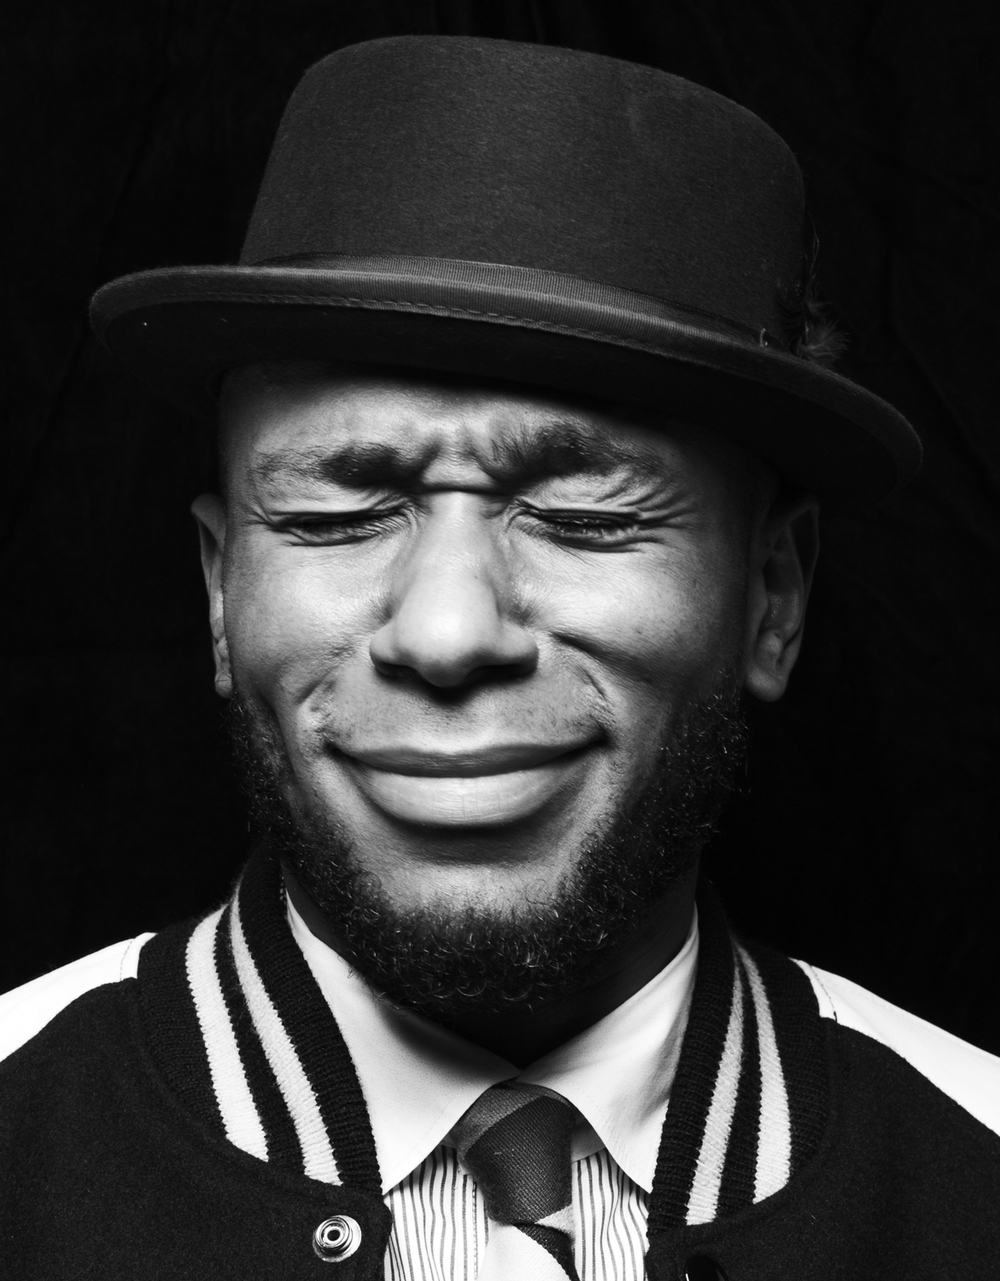 johnmidgley-mosdef-3.jpg